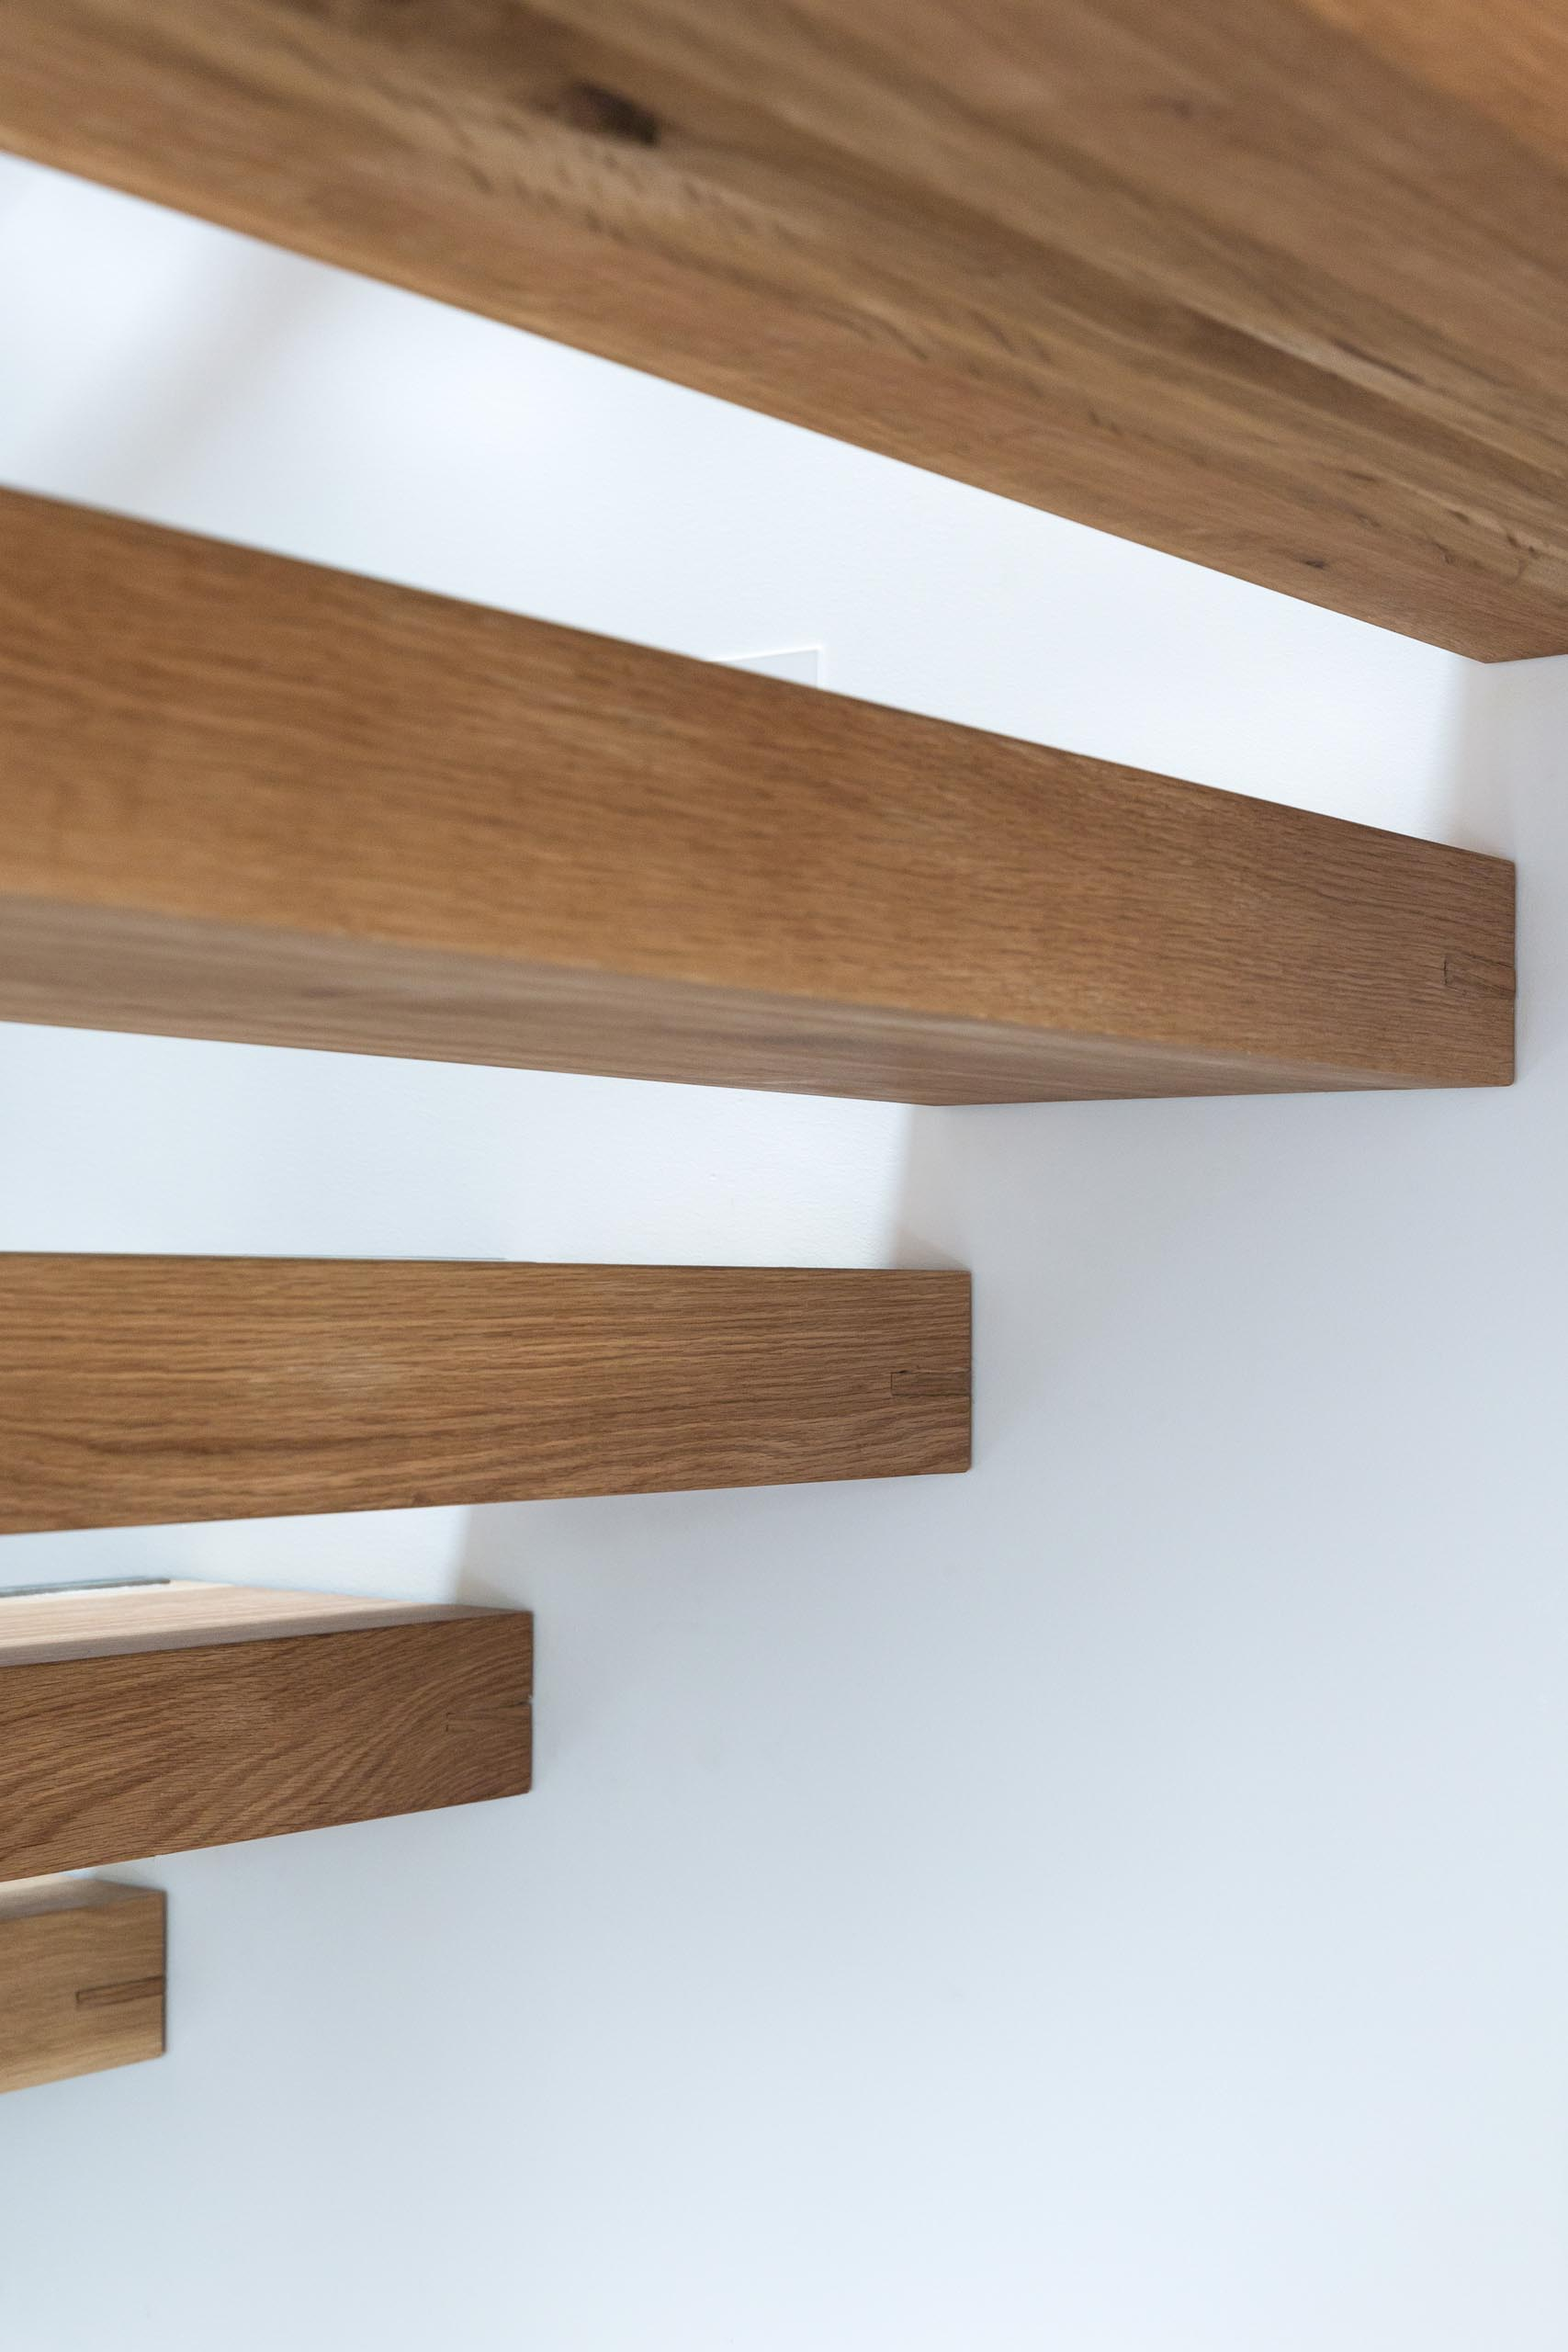 A steel and floating oak staircase with robust timber balusters and embedded stainless steel strips within the stair treads that create a non slip surface.